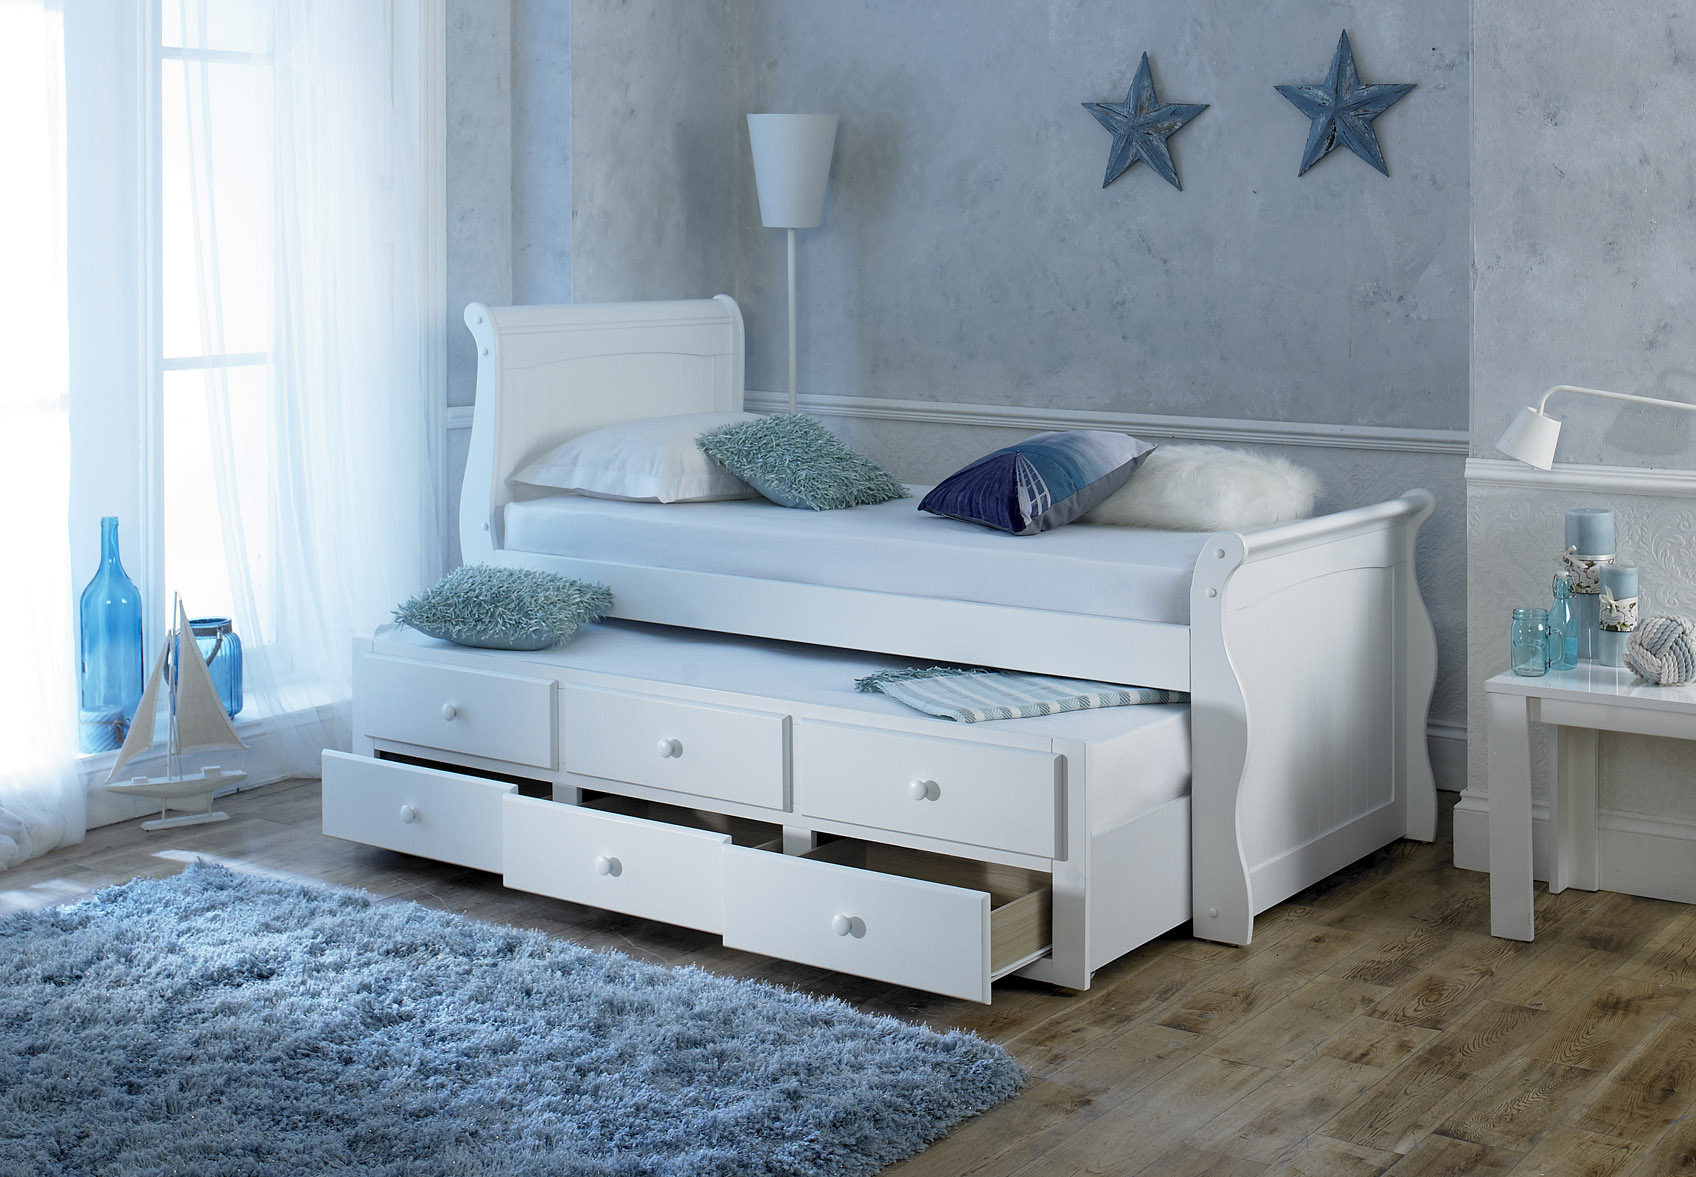 Artisan Captains Guest Bed The World Of Beds